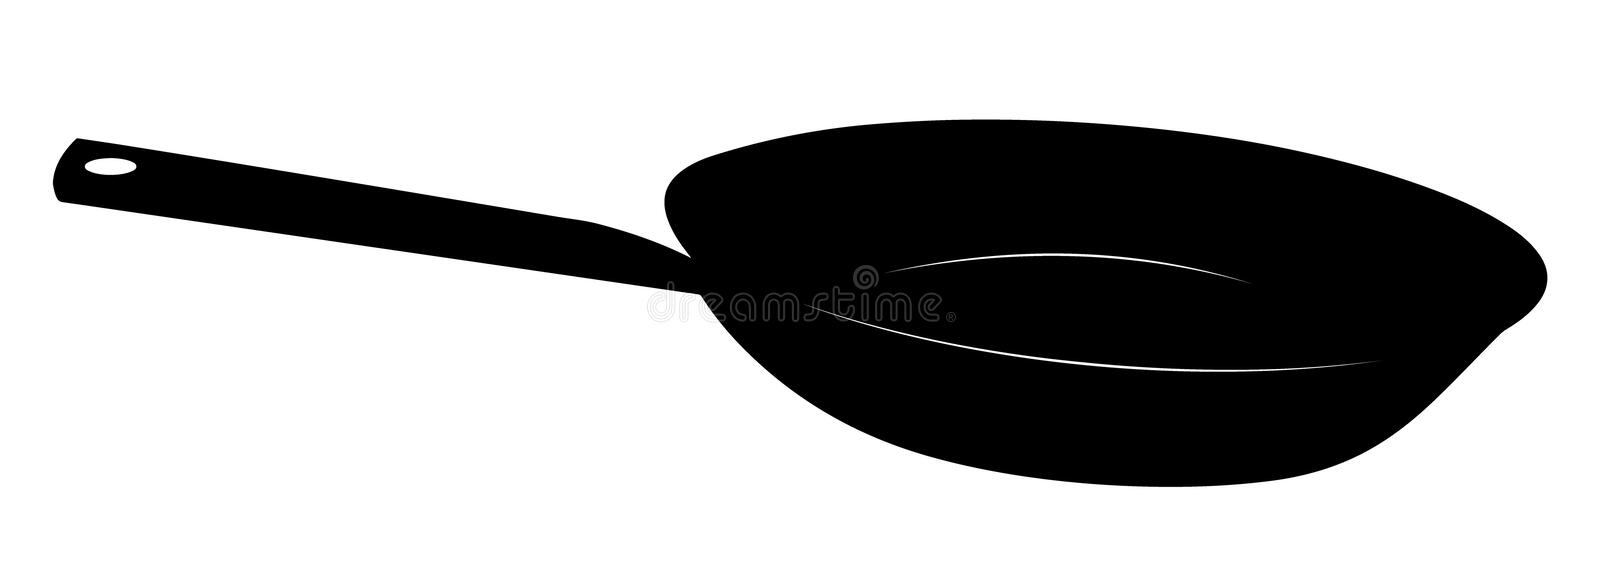 Stylized frying pan vector illustration. In black and white royalty free illustration